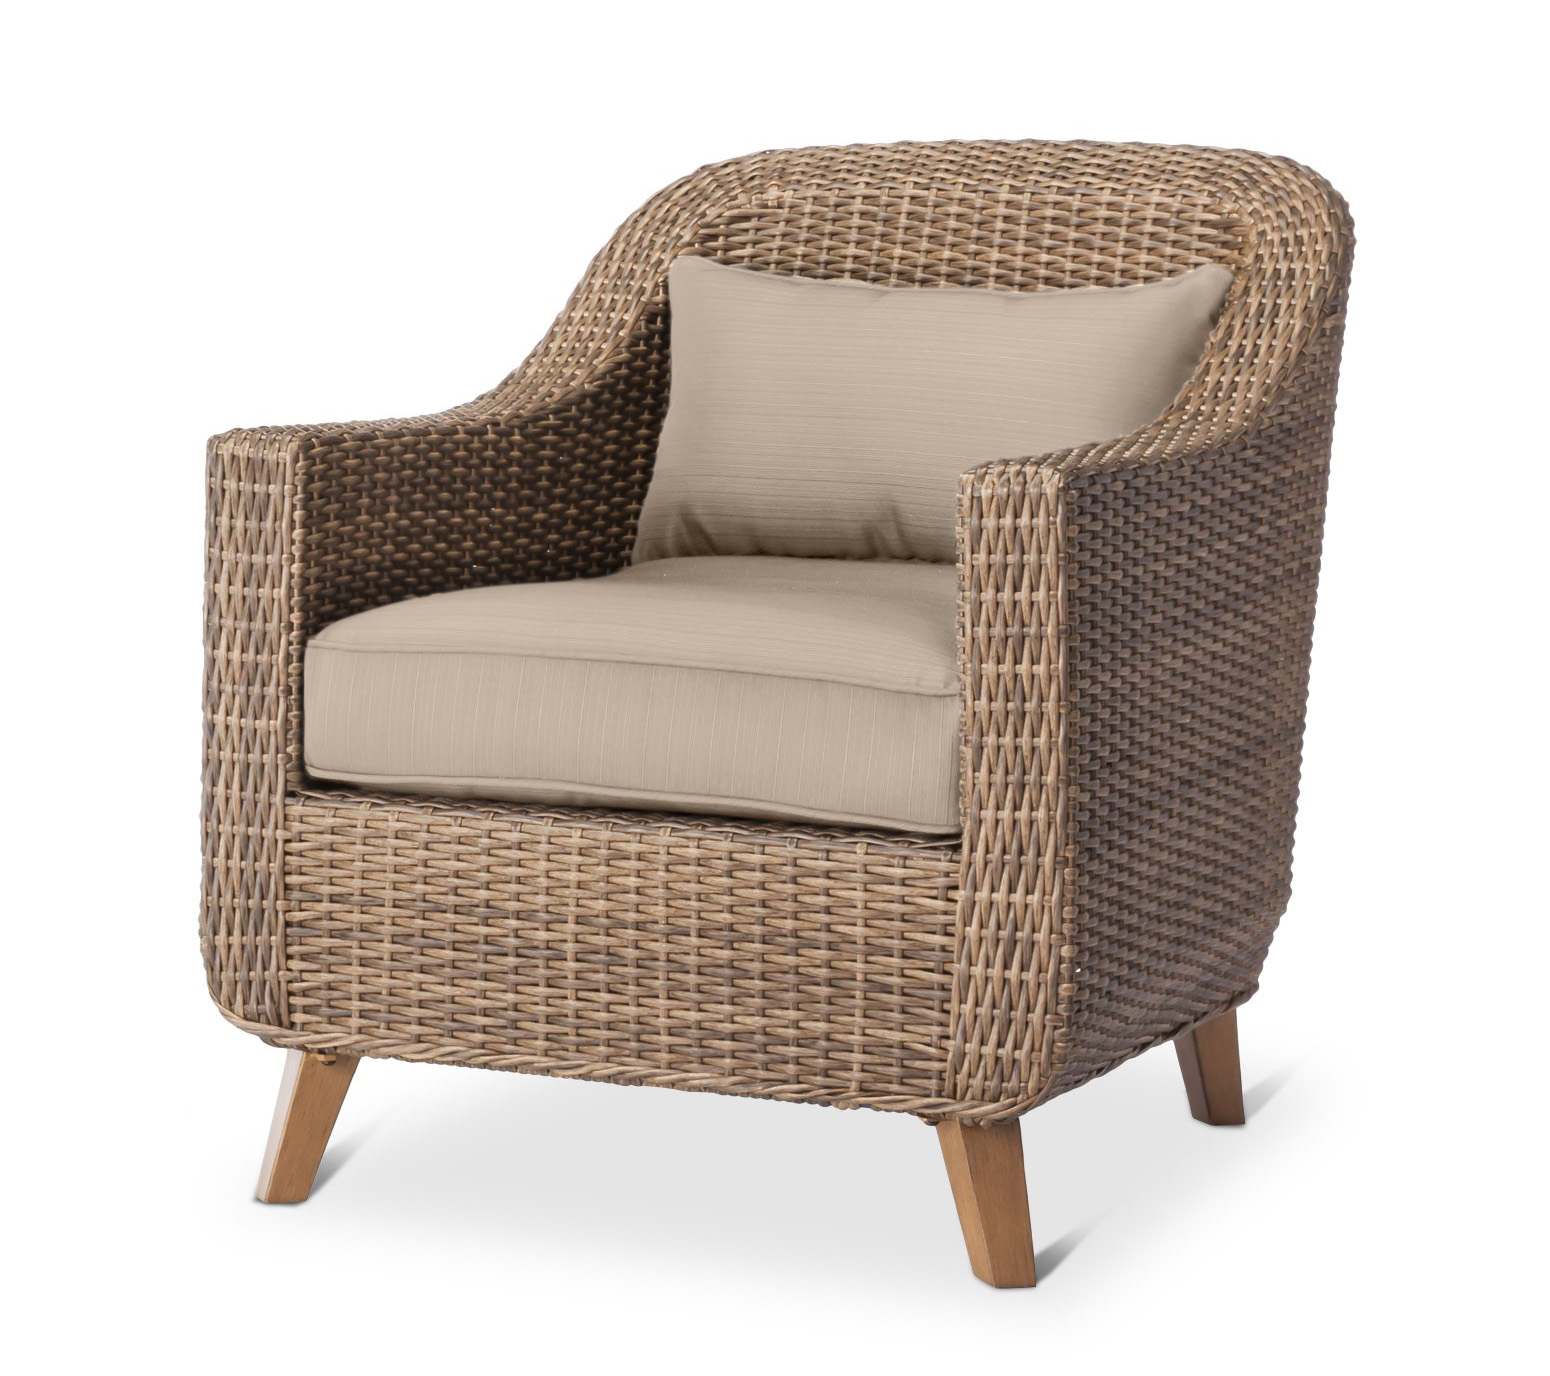 rattan chair repair kit where to reupholster dining room chairs revival natural fibers aren t just a furnishing fad